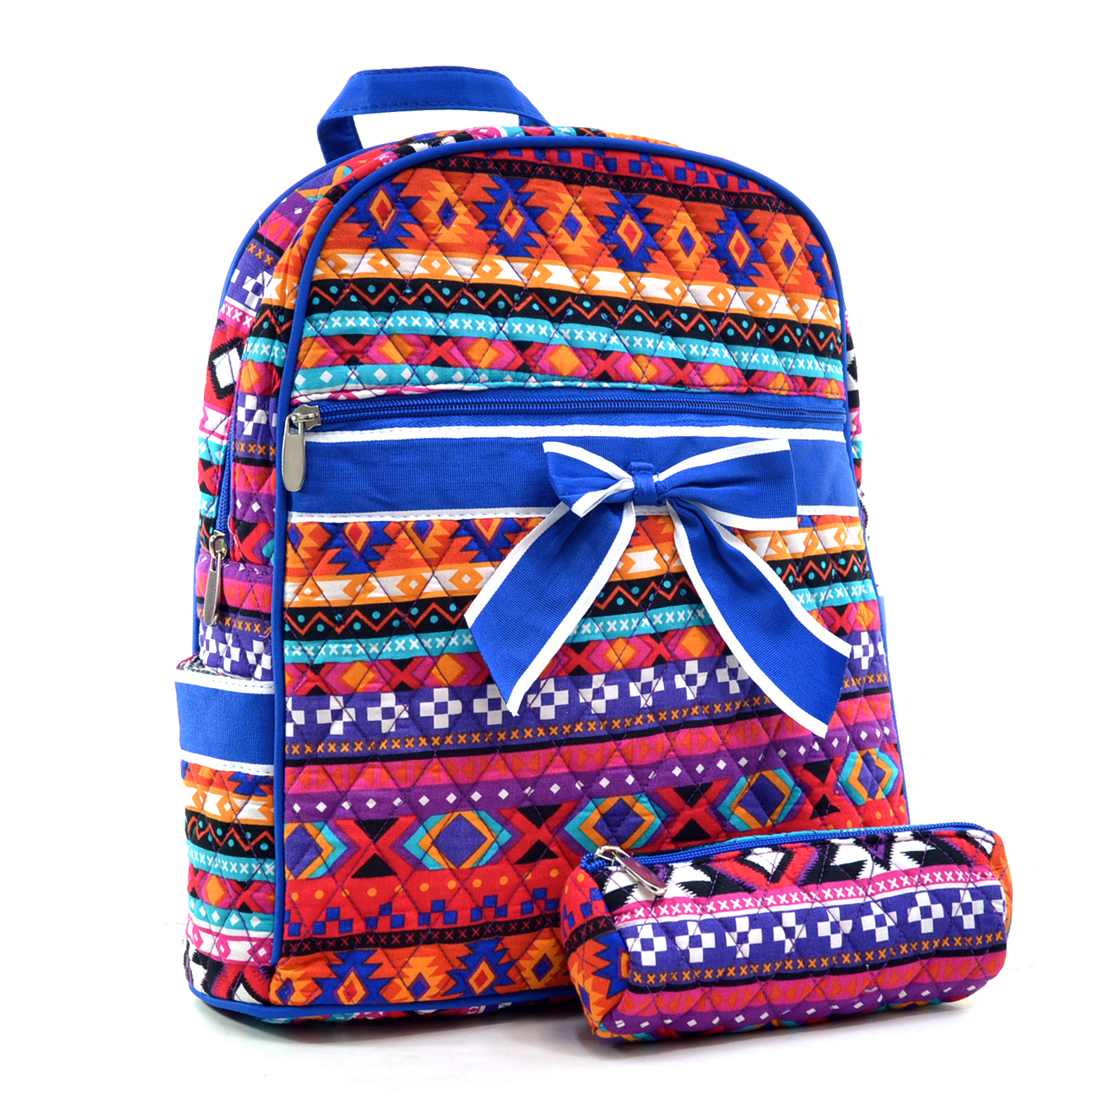 Quilted Aztec Print Mini Backpack with Convertible Shoulder Straps